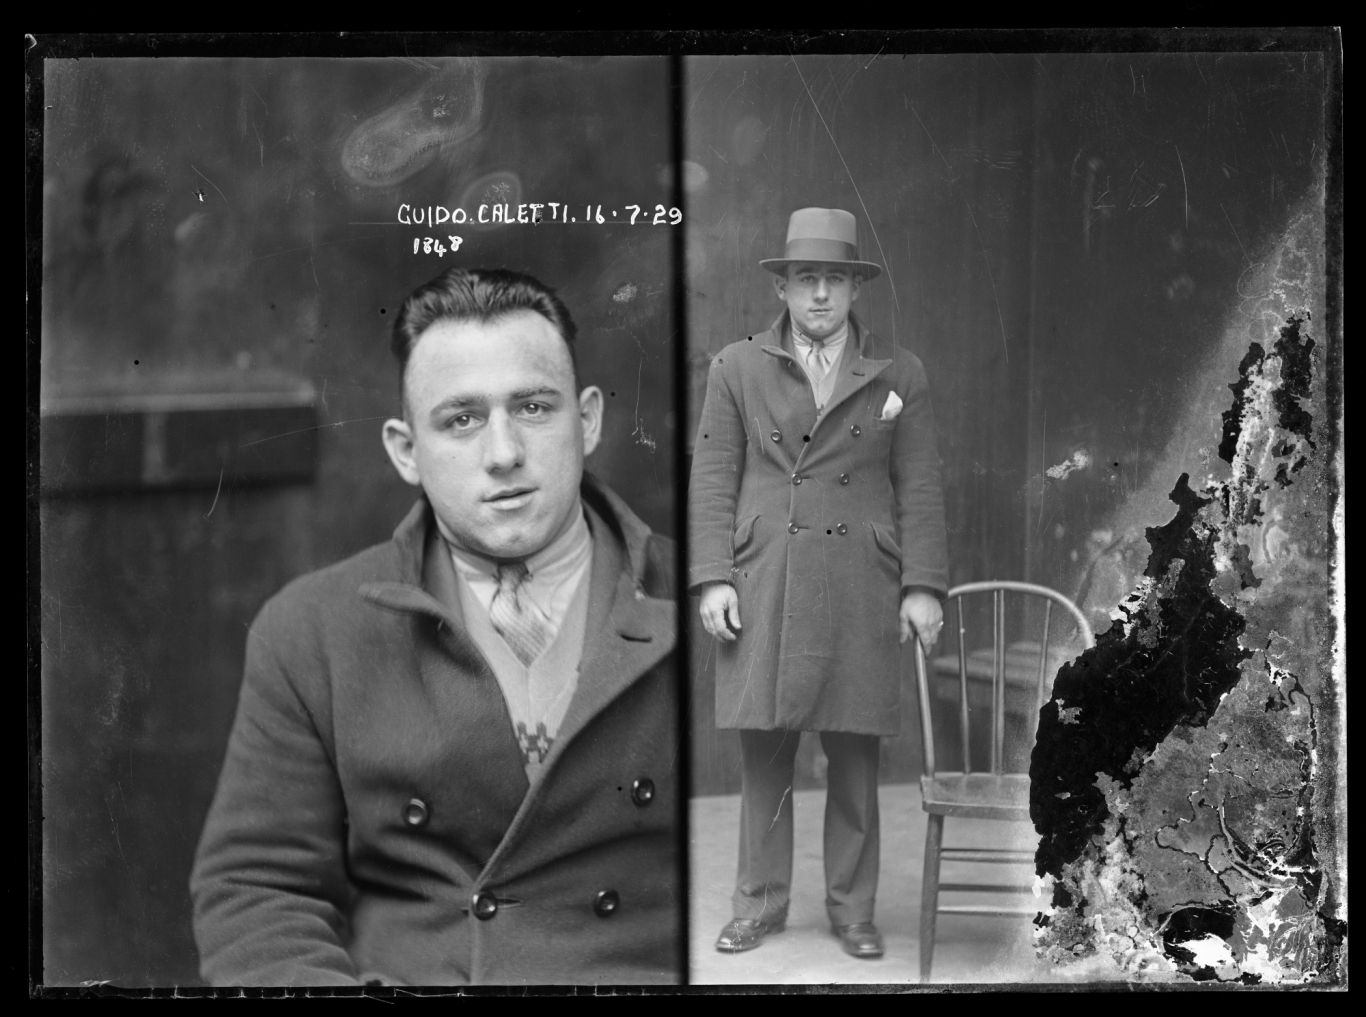 Black & white dual mugshot, with man seated (left) and standing (right), with inscription.